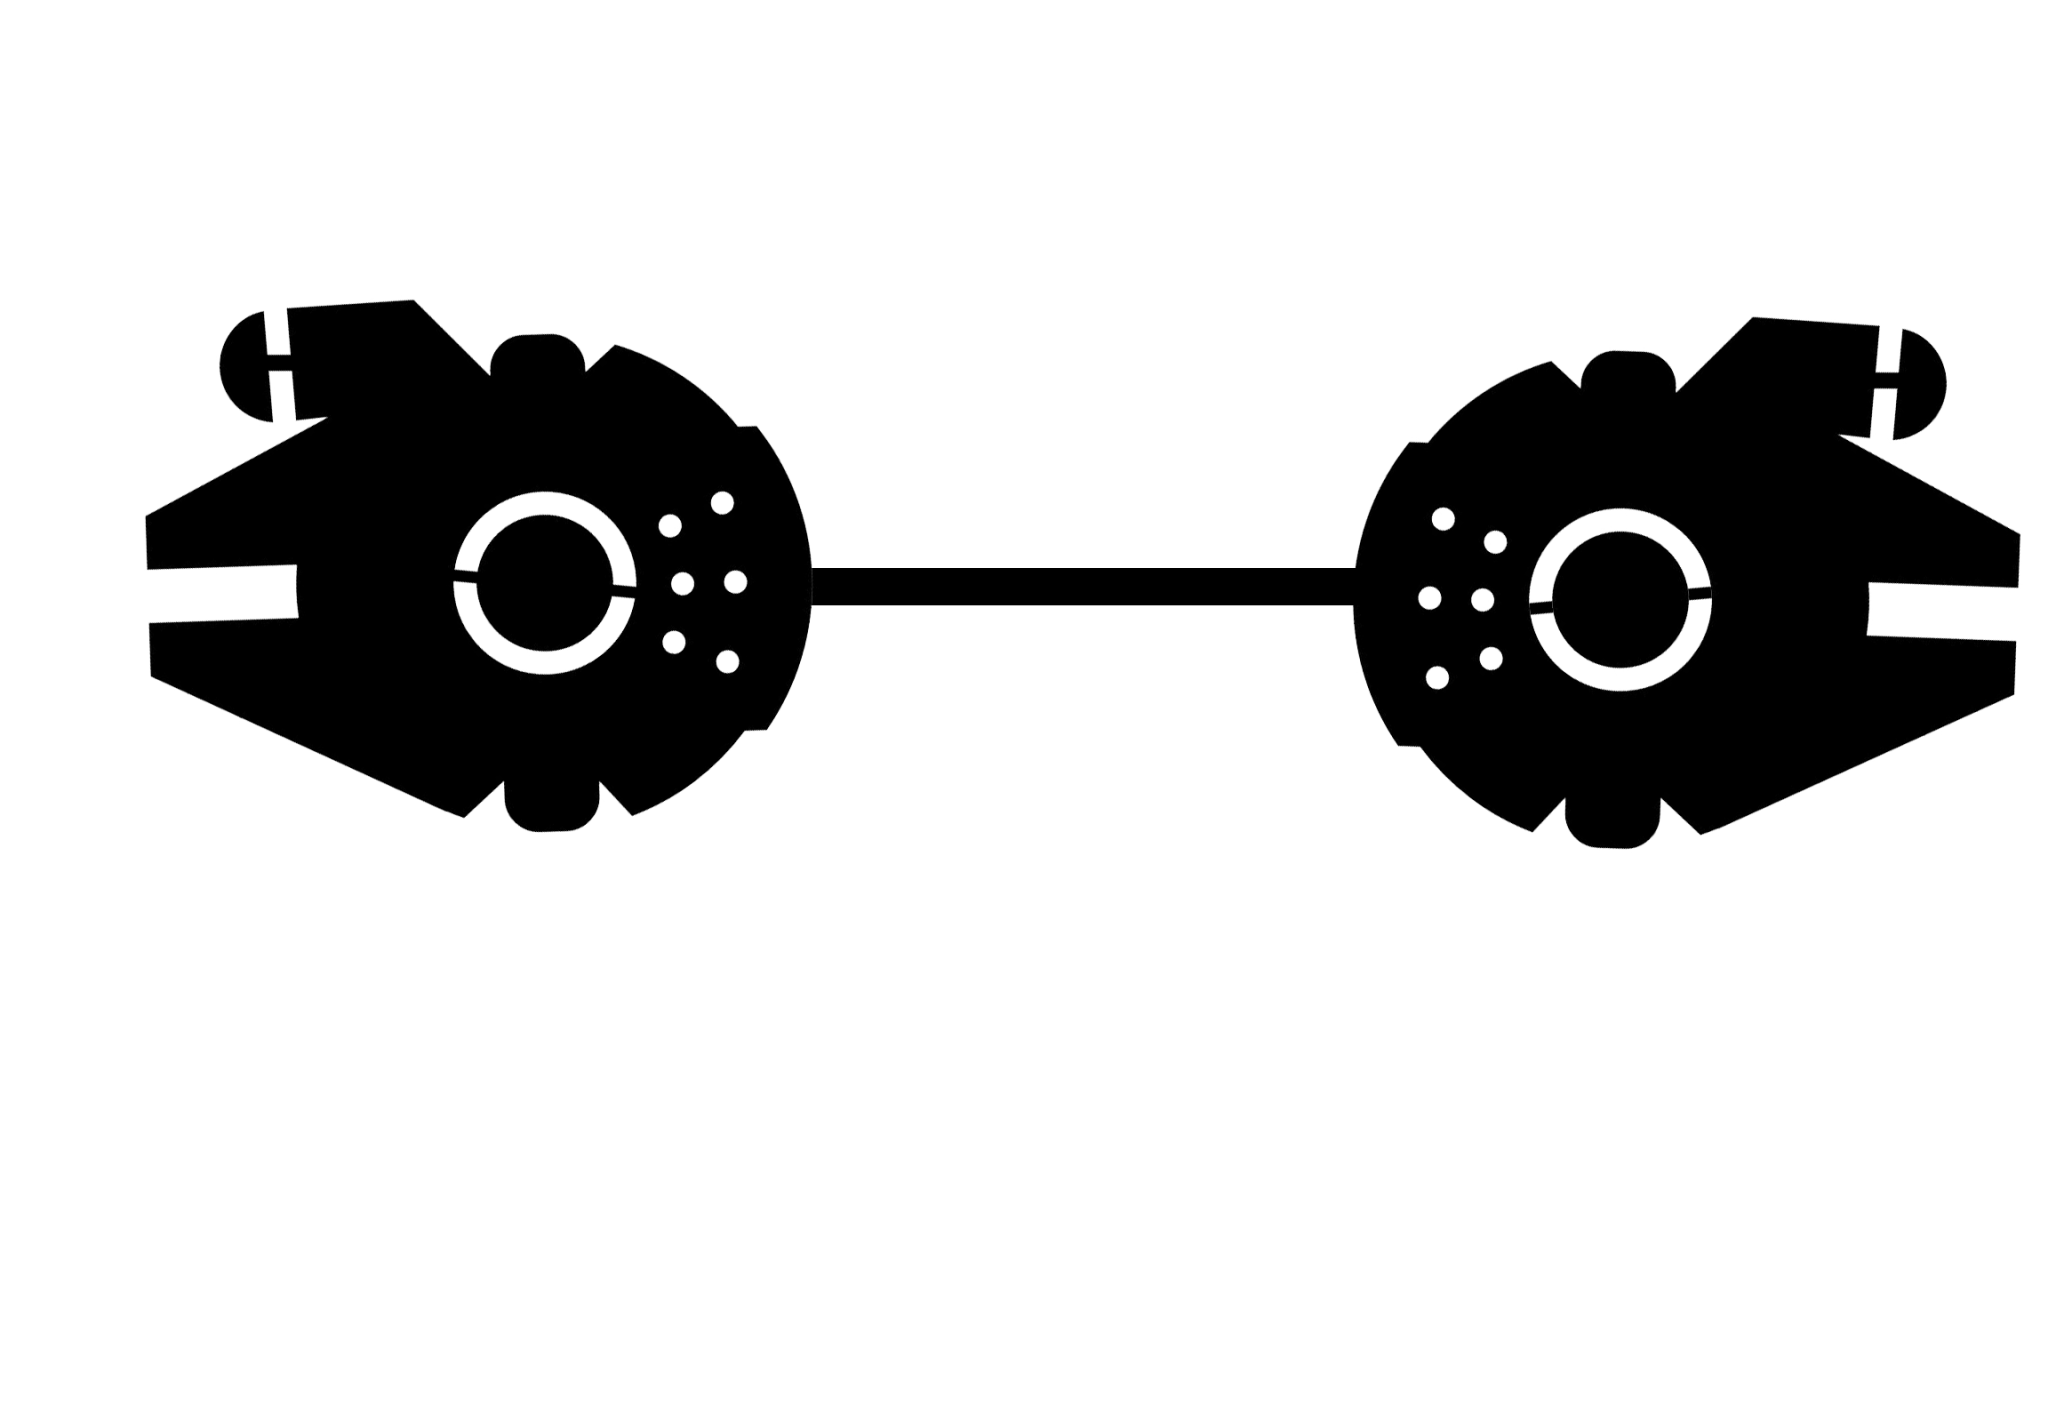 2ds transparent flower crown. Black and white png